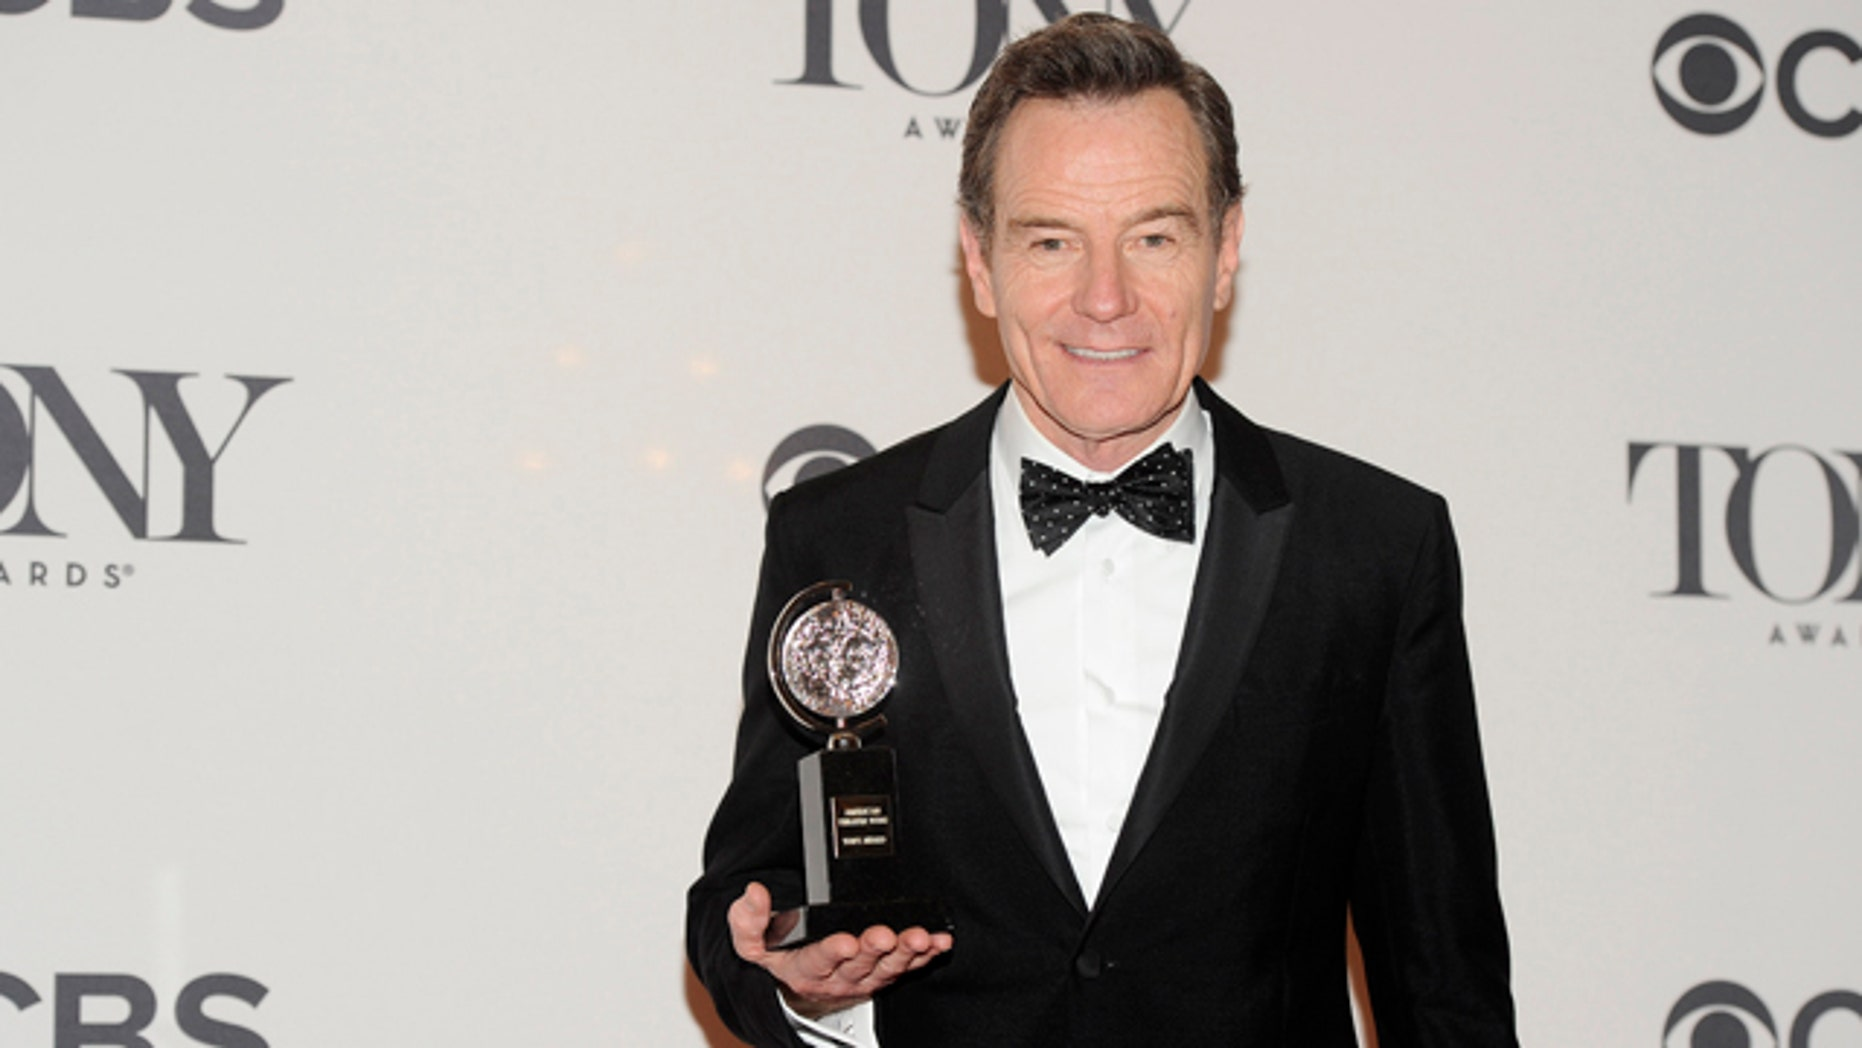 June 8, 2014: Bryan Cranston poses with his award for best actor in a play for 'All the Way' in the press room at the 68th annual Tony Awards at Radio City Music Hall in New York. (Photo by Charles Sykes/Invision/AP)